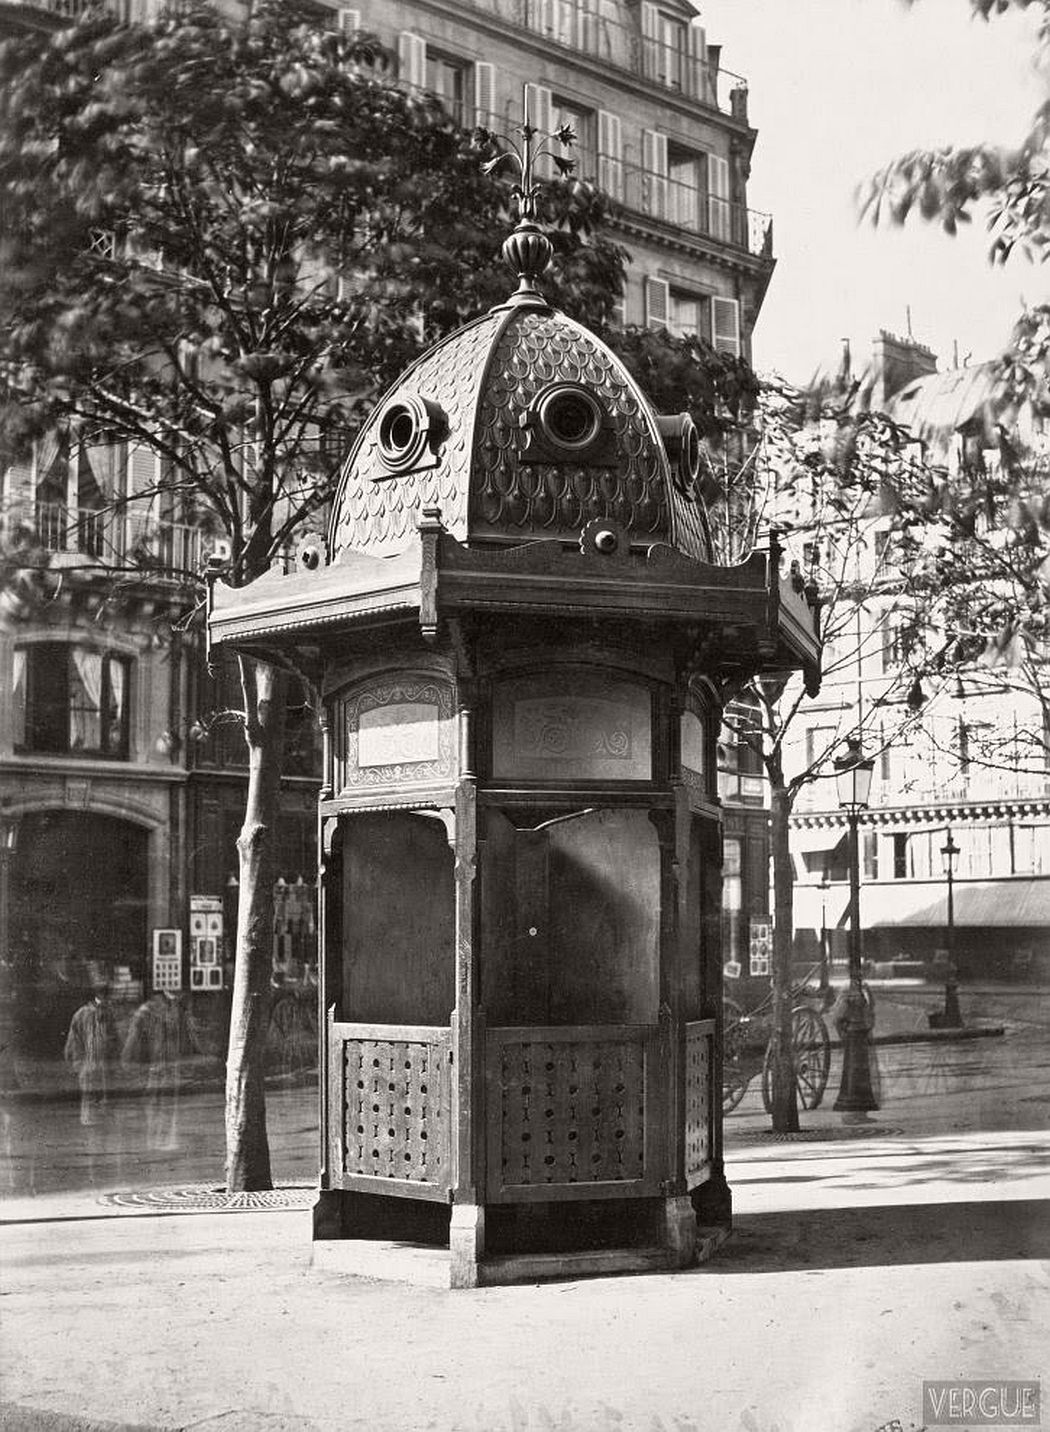 vintage-public-urinals-in-paris-by-charles-marville-19th-century-02